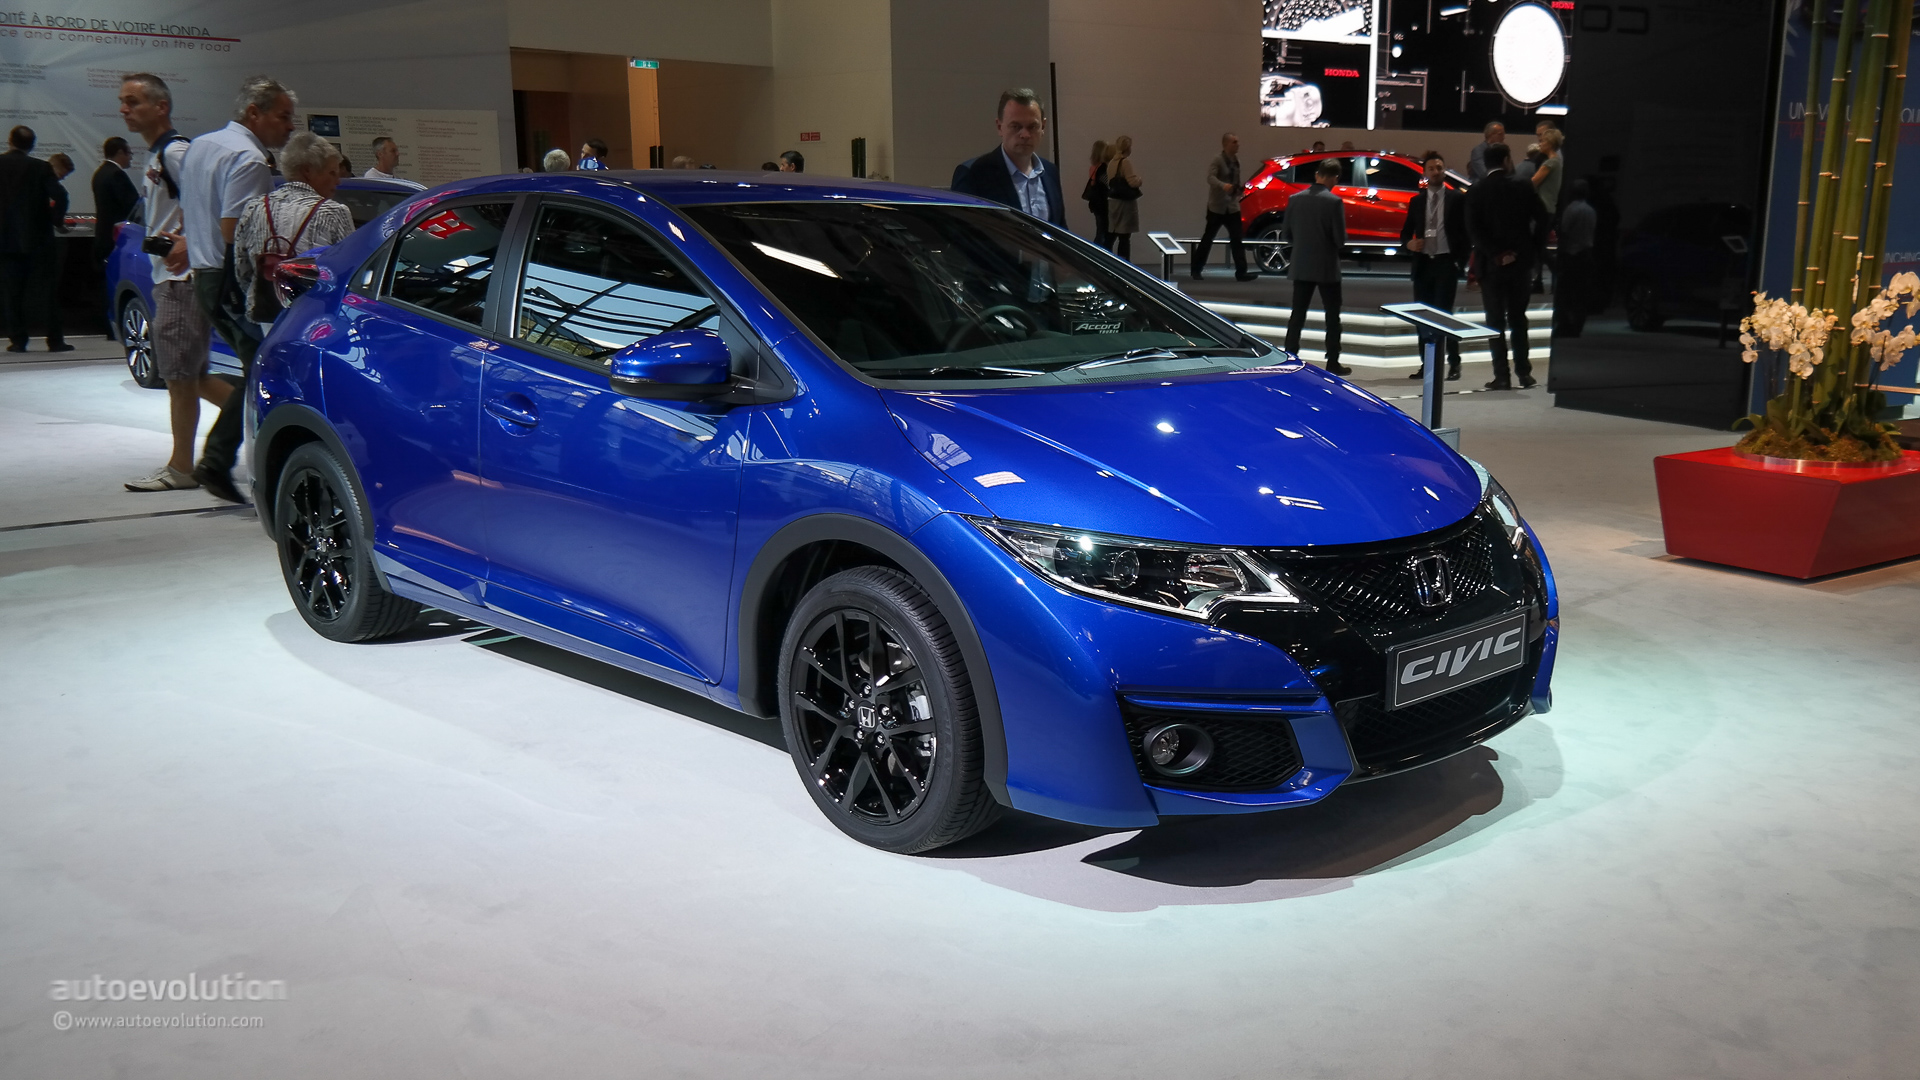 Honda Civic 5 Door Hatchback Coming To The Us In 2016 Autoevolution 2014 Wiring Diagram 30 Photos